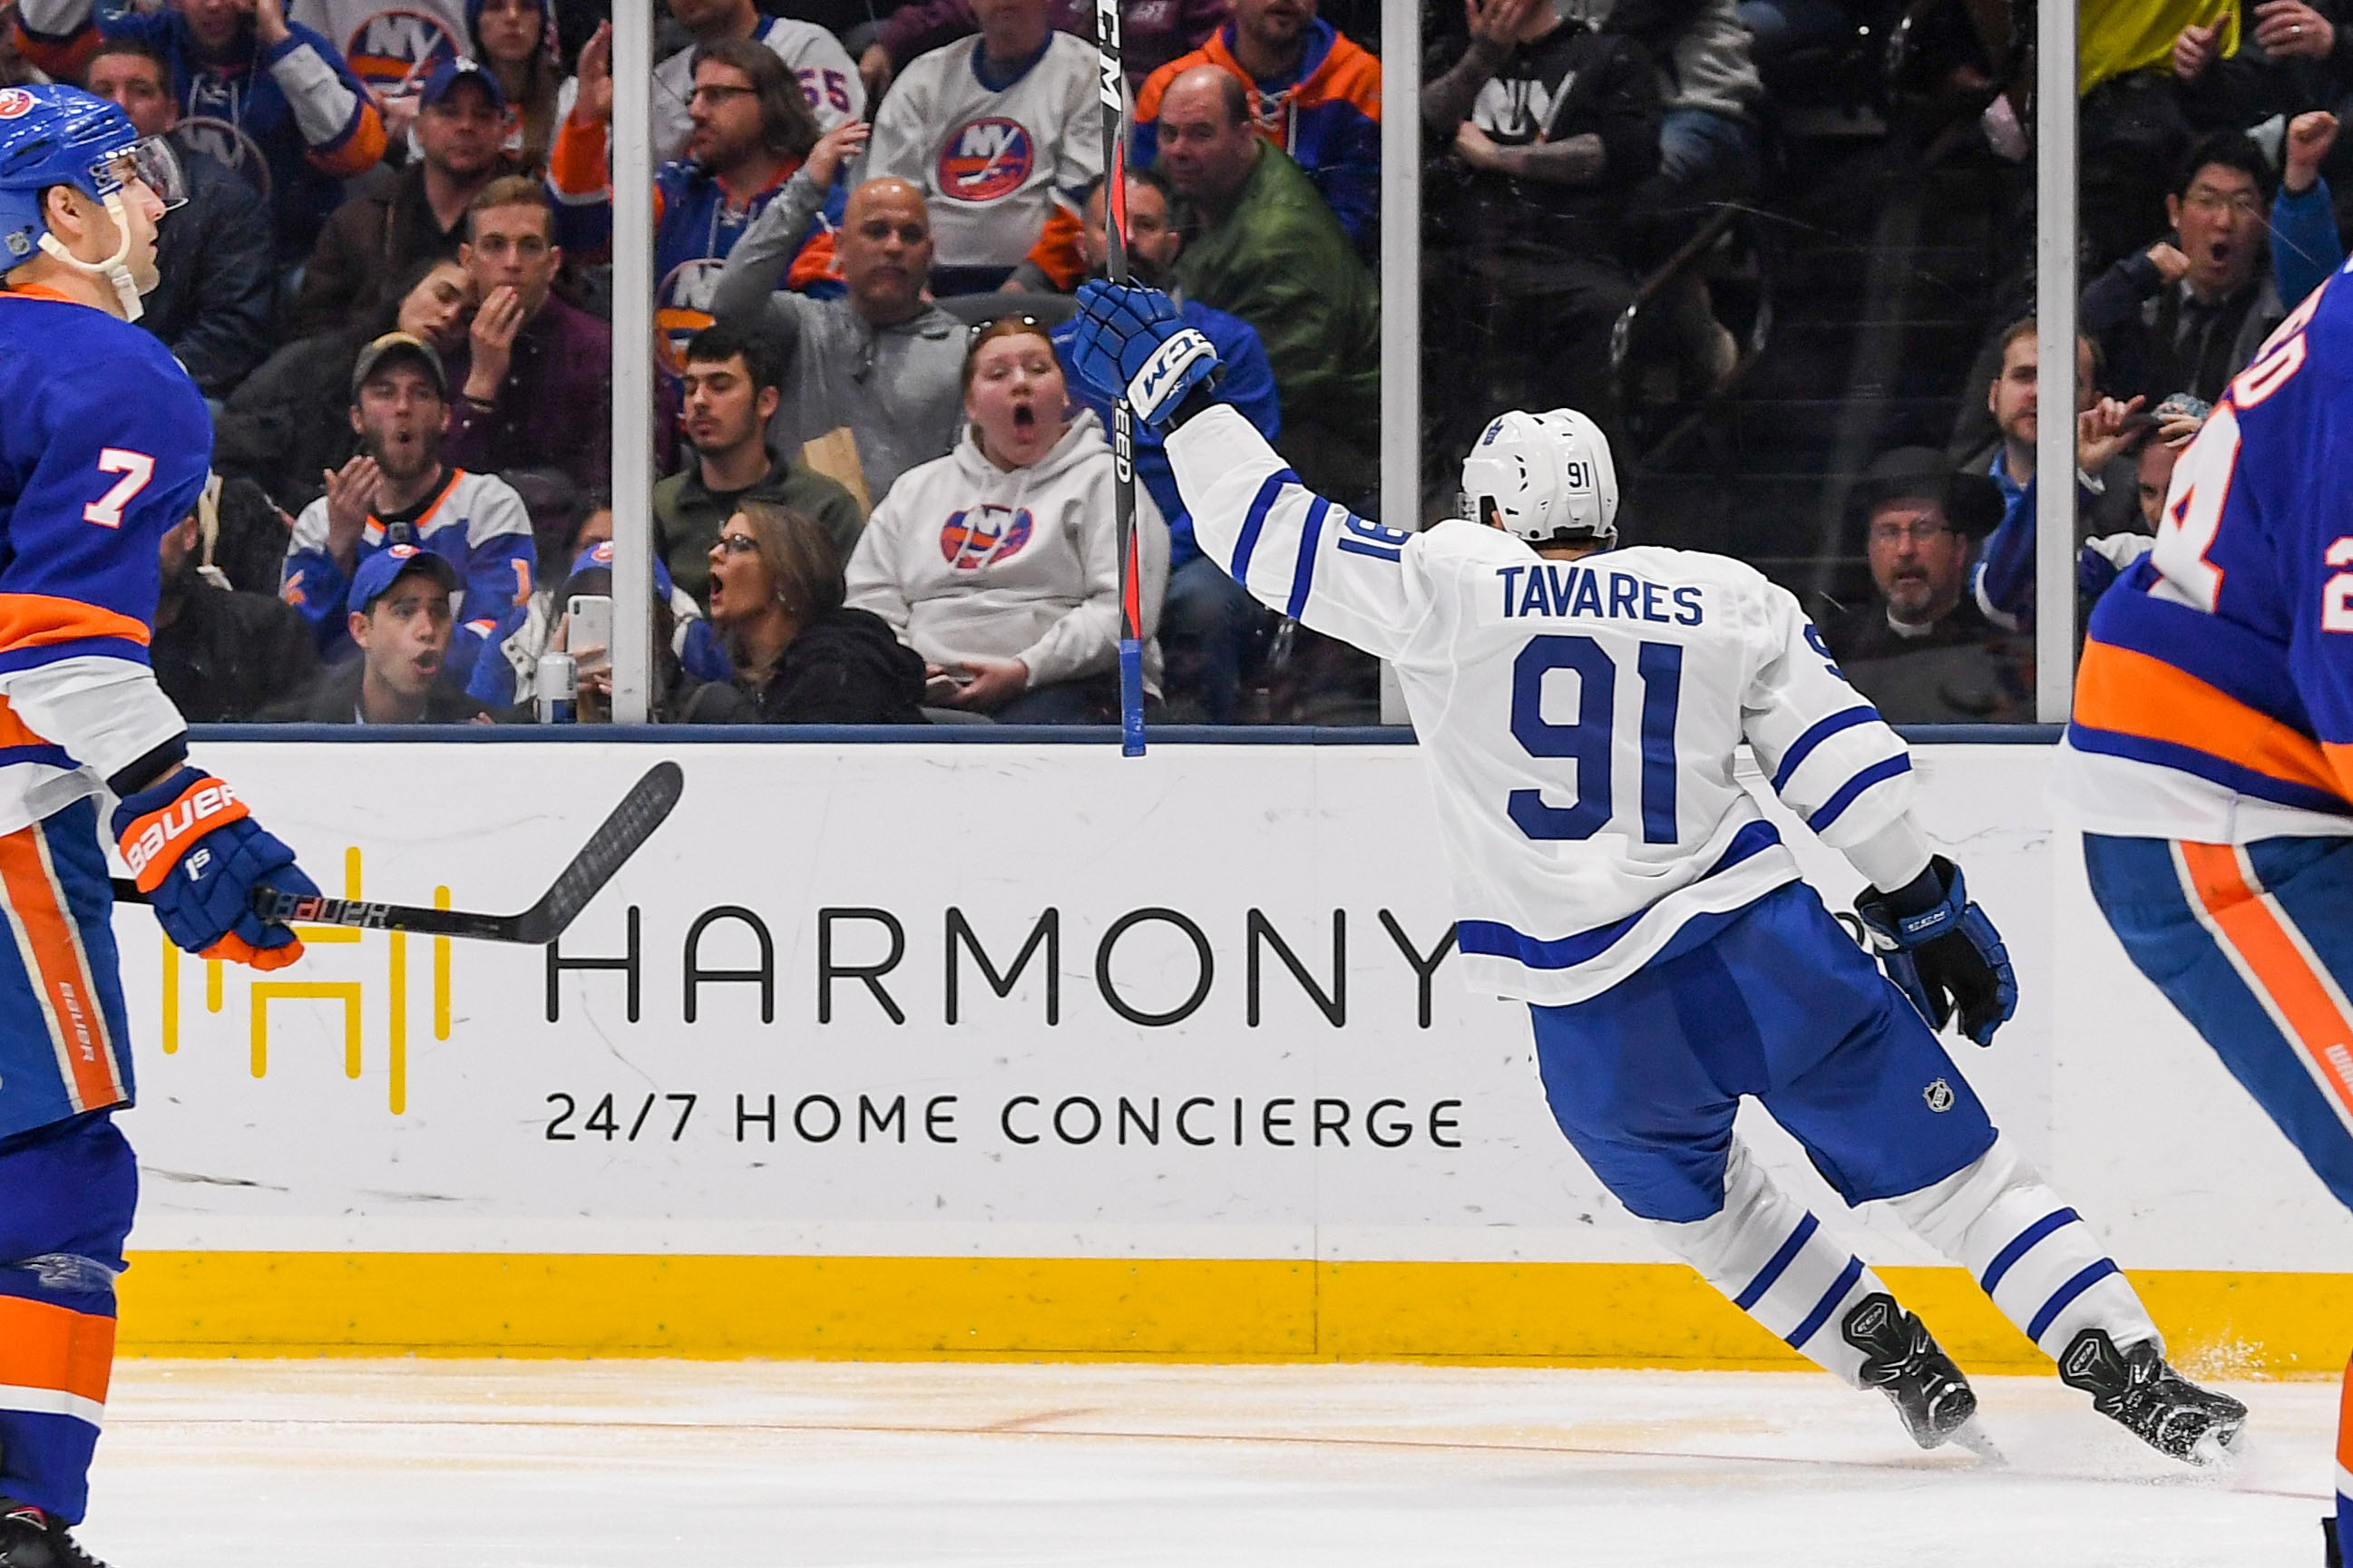 Apr 1, 2019; Uniondale, NY, USA; Toronto Maple Leafs center John Tavares (91) celebrates his goal against the New York Islanders during the third period at Nassau Veterans Memorial Coliseum. Mandatory Credit: Dennis Schneidler-USA TODAY Sports